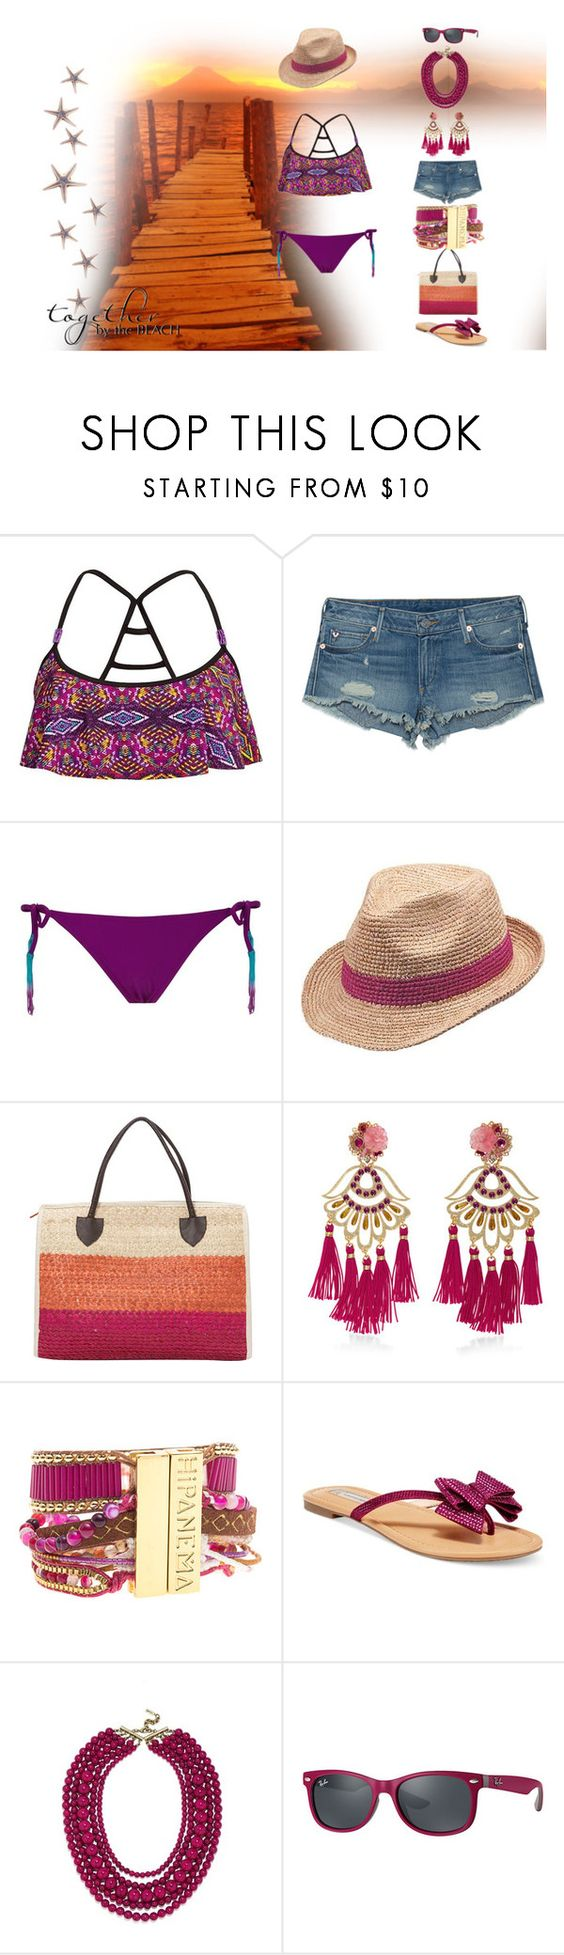 """""""Beach"""" by lulochka ❤ liked on Polyvore featuring The Bikini Lab, True Religion, Peter Grimm, TLC&you, Mercedes Salazar, Hipanema, INC International Concepts, BaubleBar and Ray-Ban"""